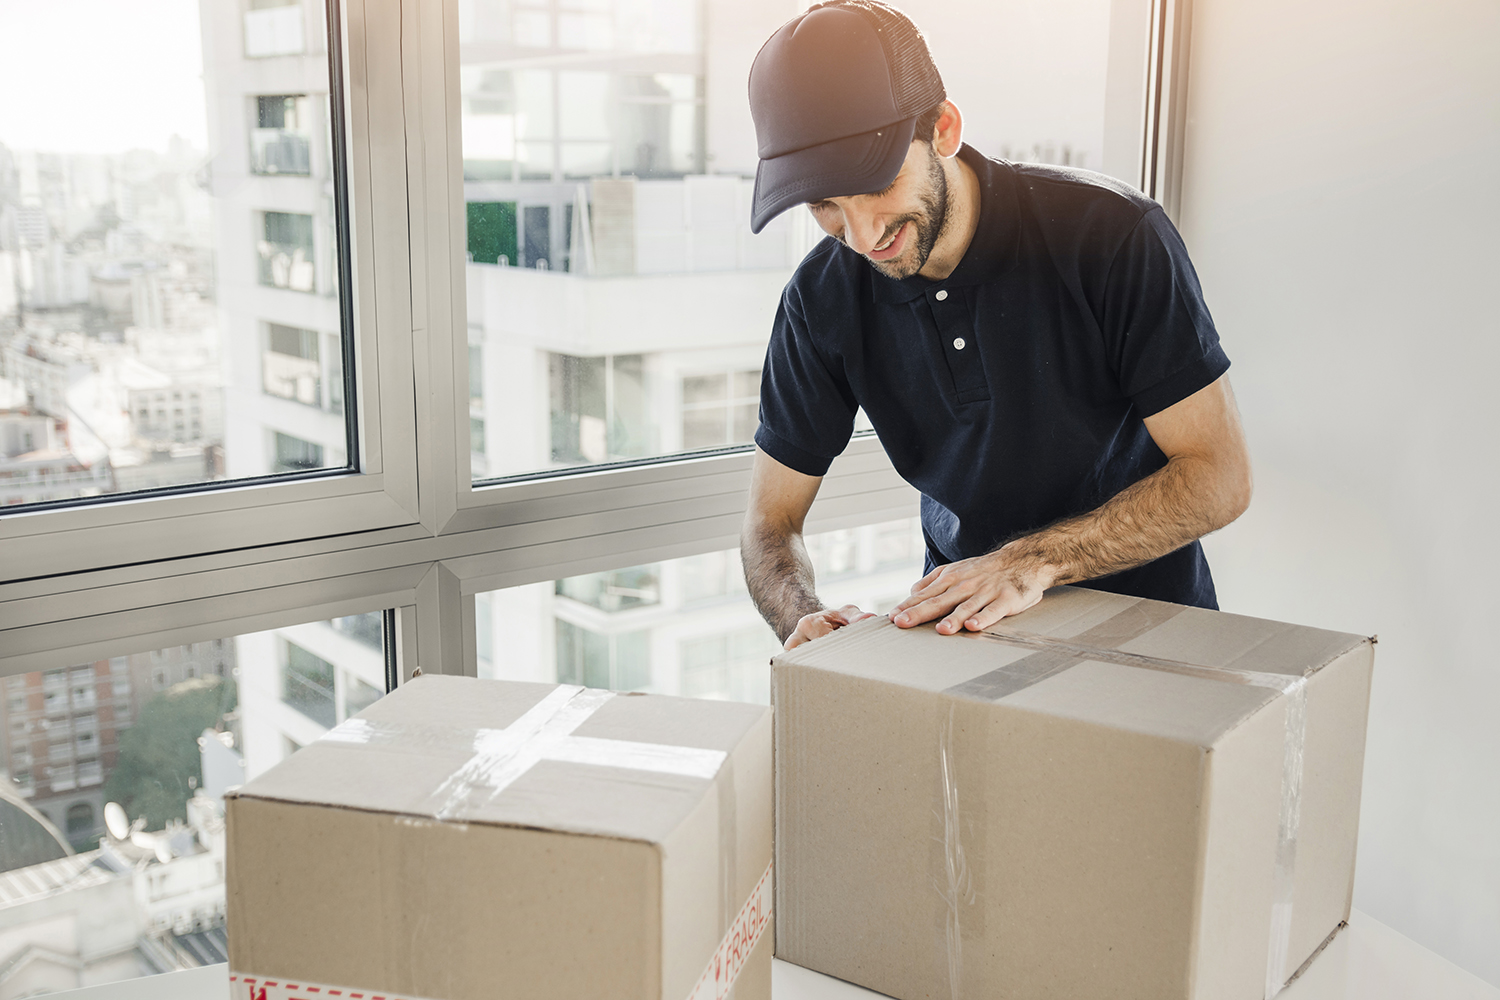 What Are The Fundamental Key Points To Verify And Confirm Before Hiring A Team Of Cheap Movers In Sydney?